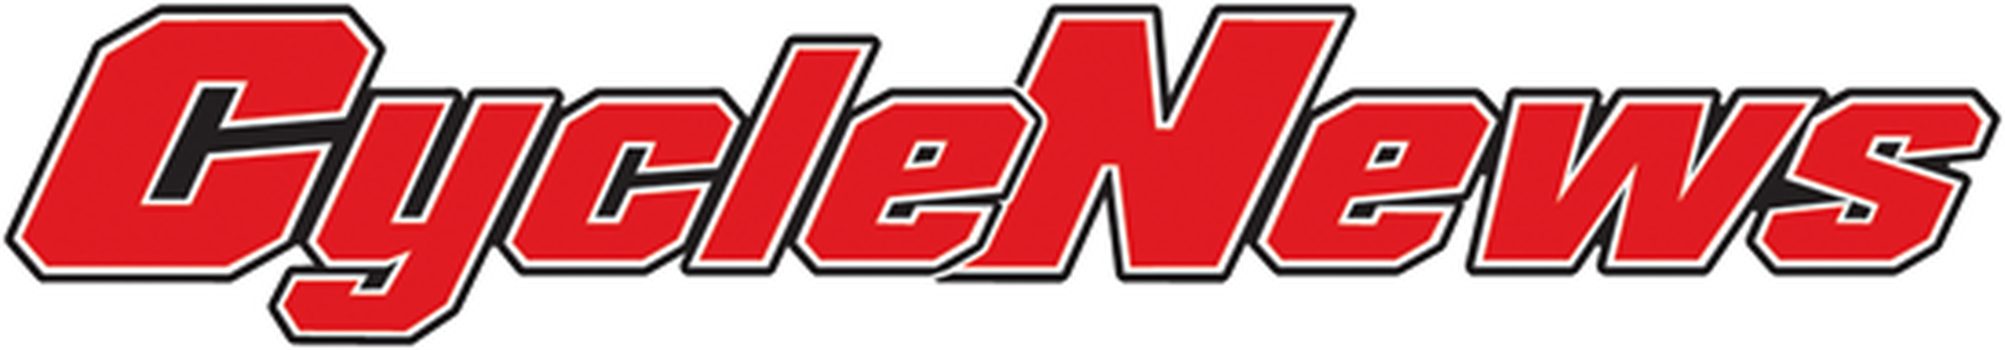 Cycle News logo